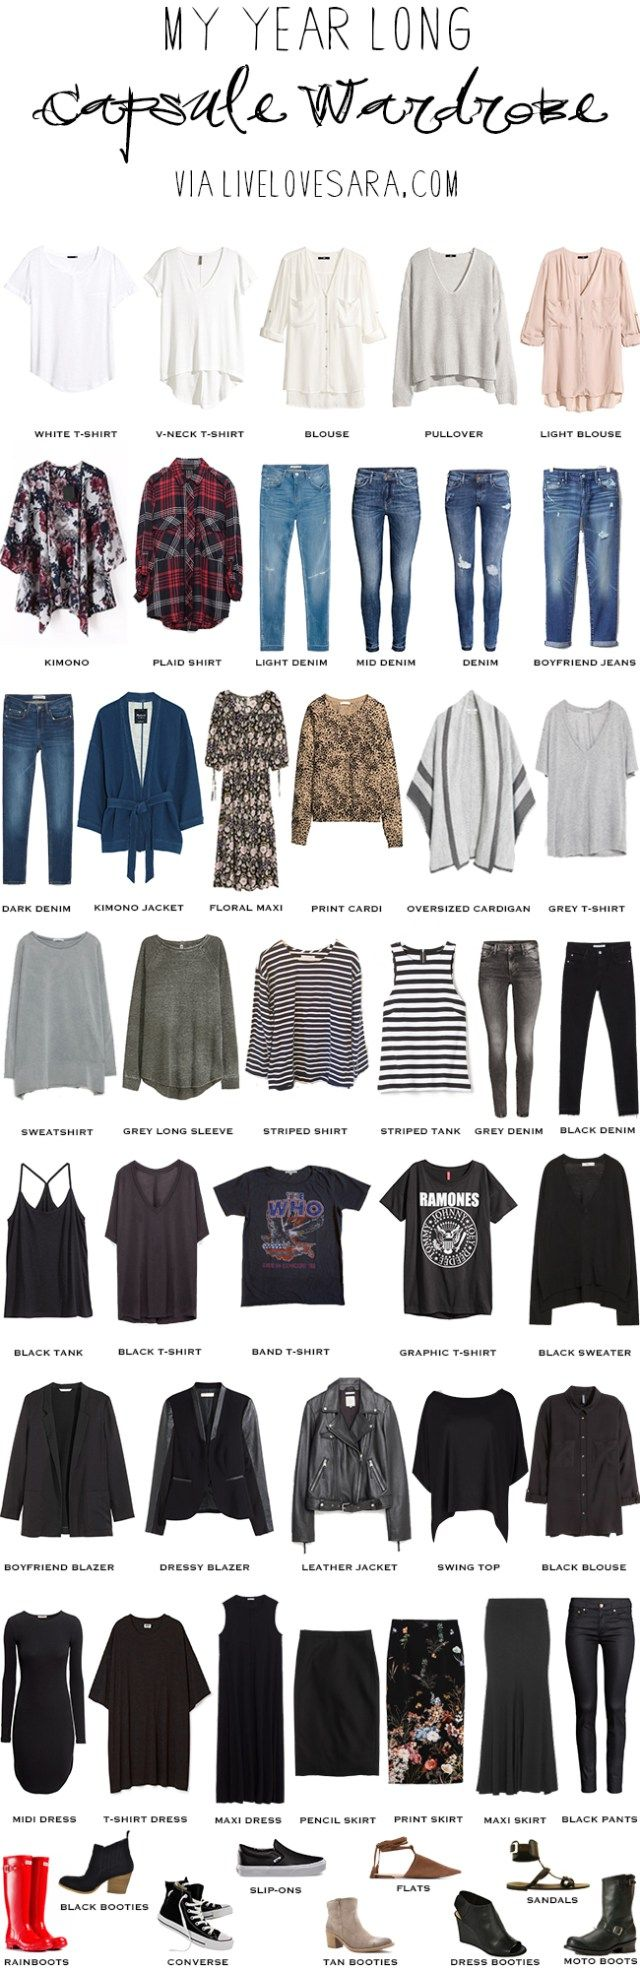 Year Long Capsule Wardrobe Update Building my wardrobe #capsule #capsulewardrobe #wardrobe